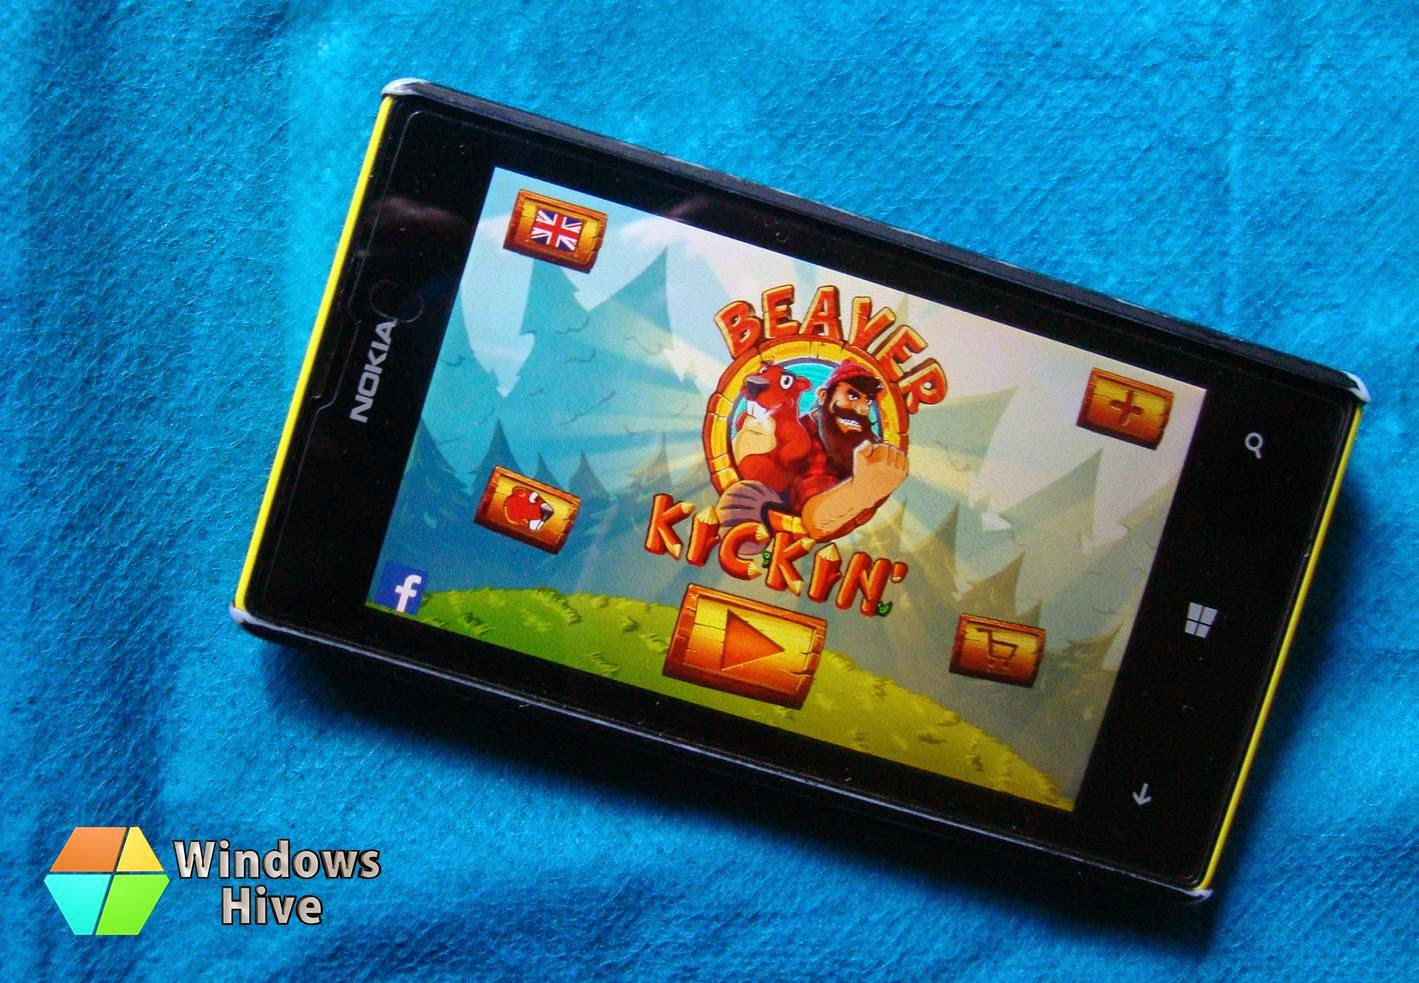 beaver kickin, windows phone, game